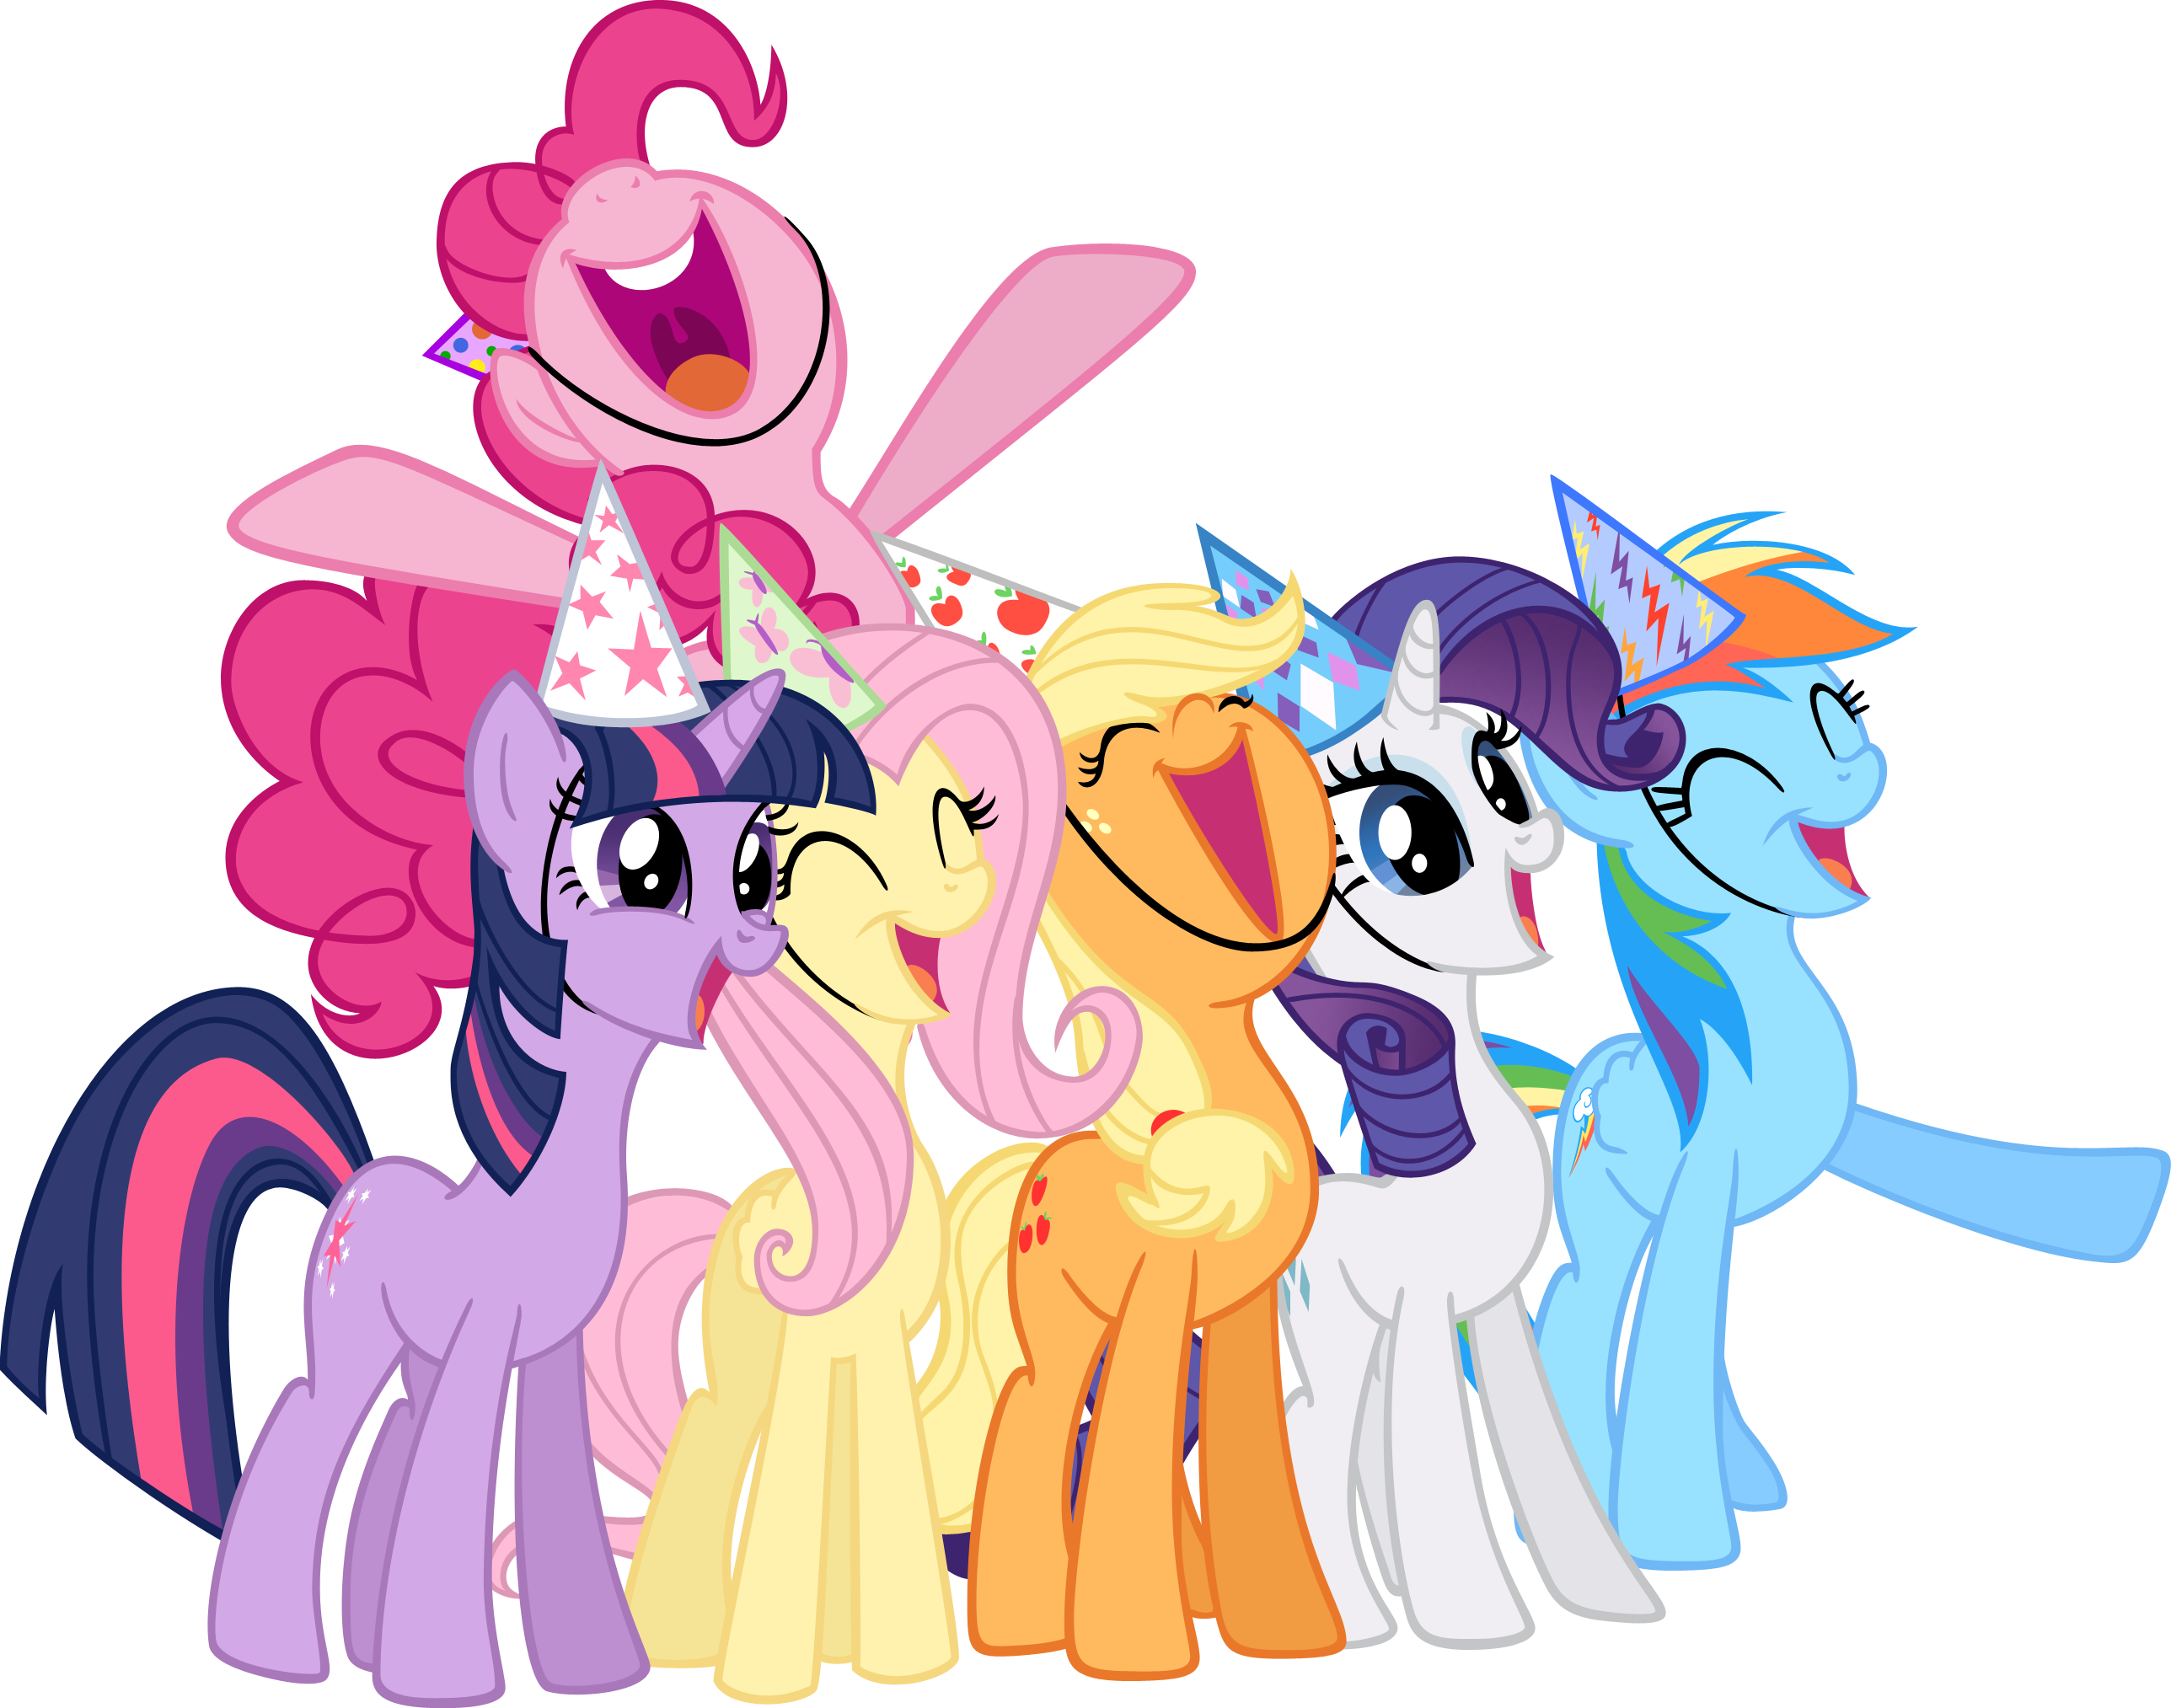 image 512716 my little pony friendship is magic know your meme rh knowyourmeme com my little pony clip art black and white clipart my little pony